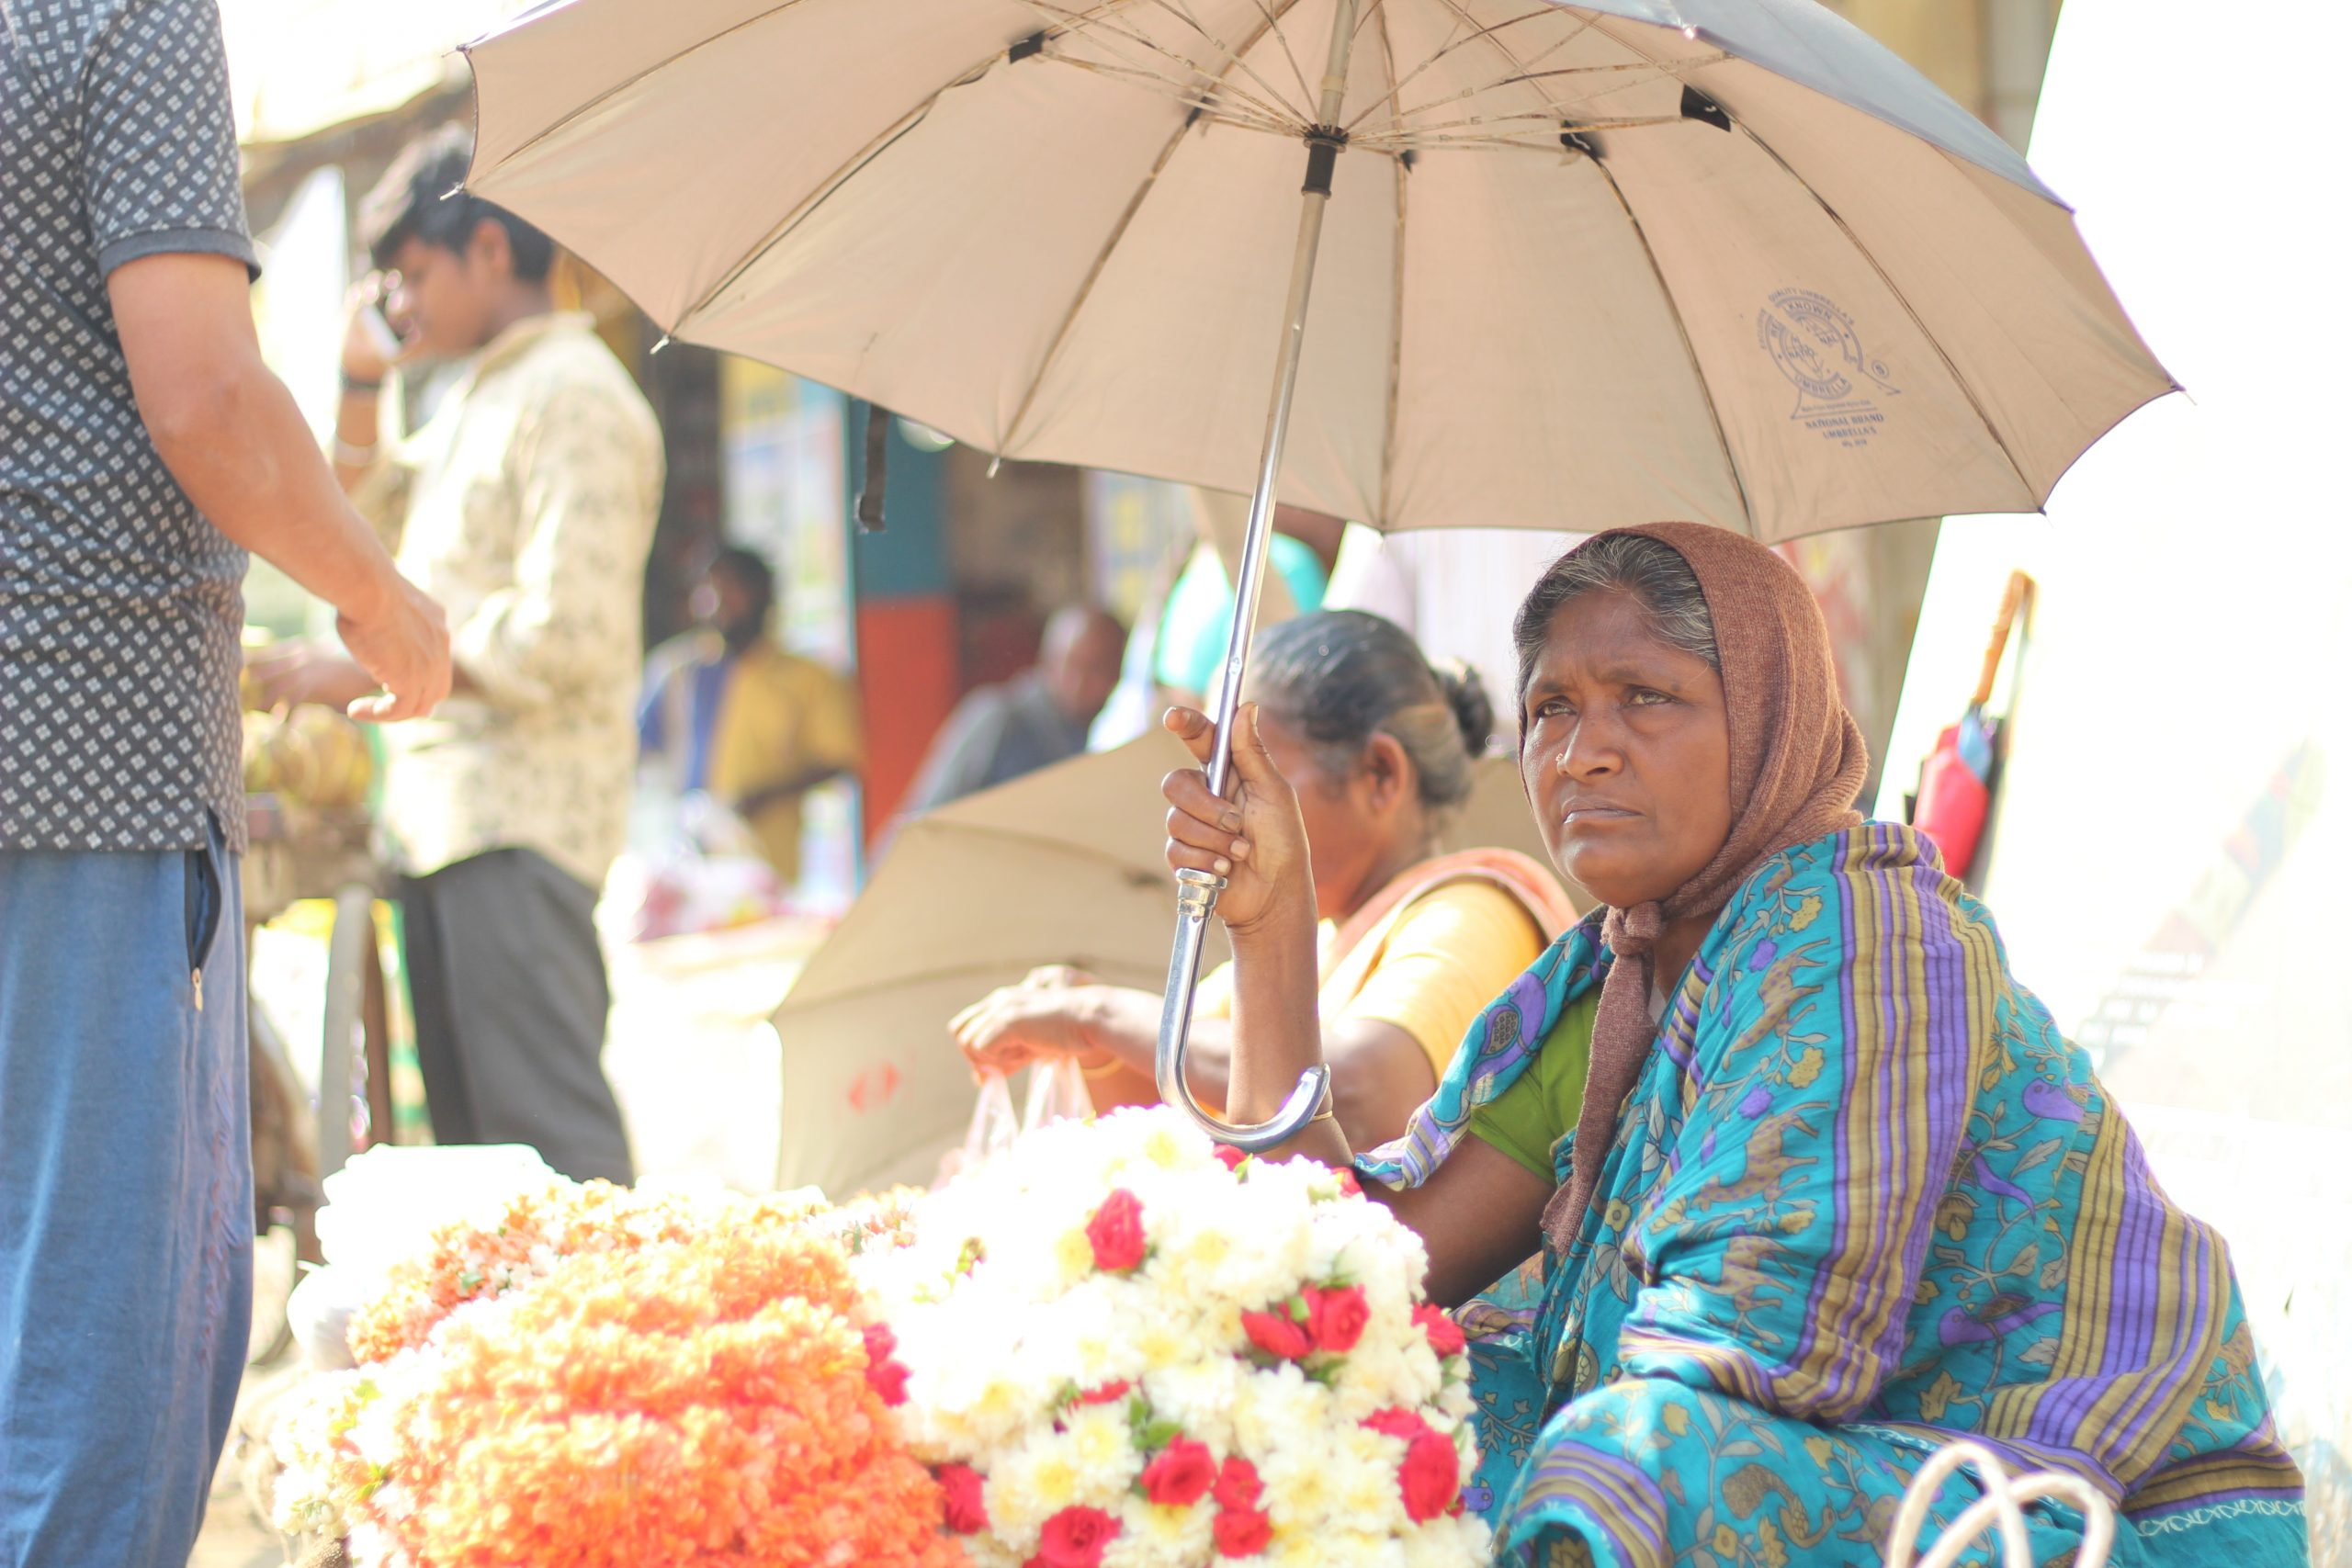 Women selling flowers and sitting under umbrella